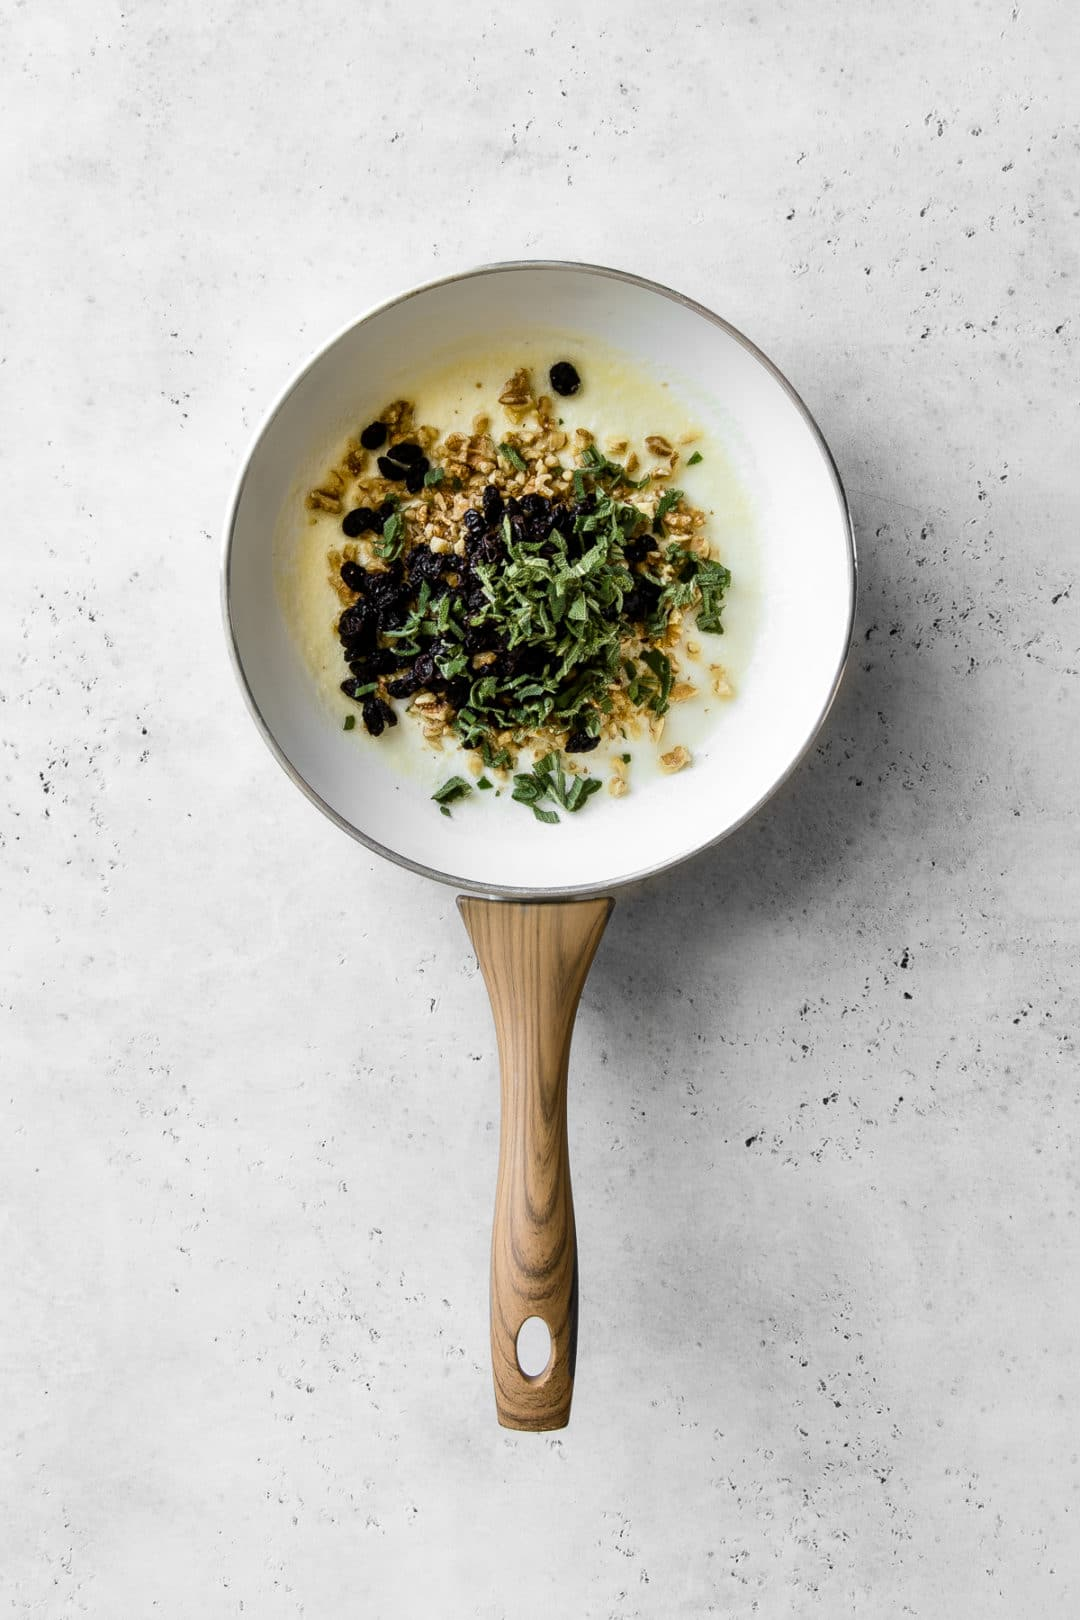 Walnuts, raisins, sage and olive oil in a white frying pan